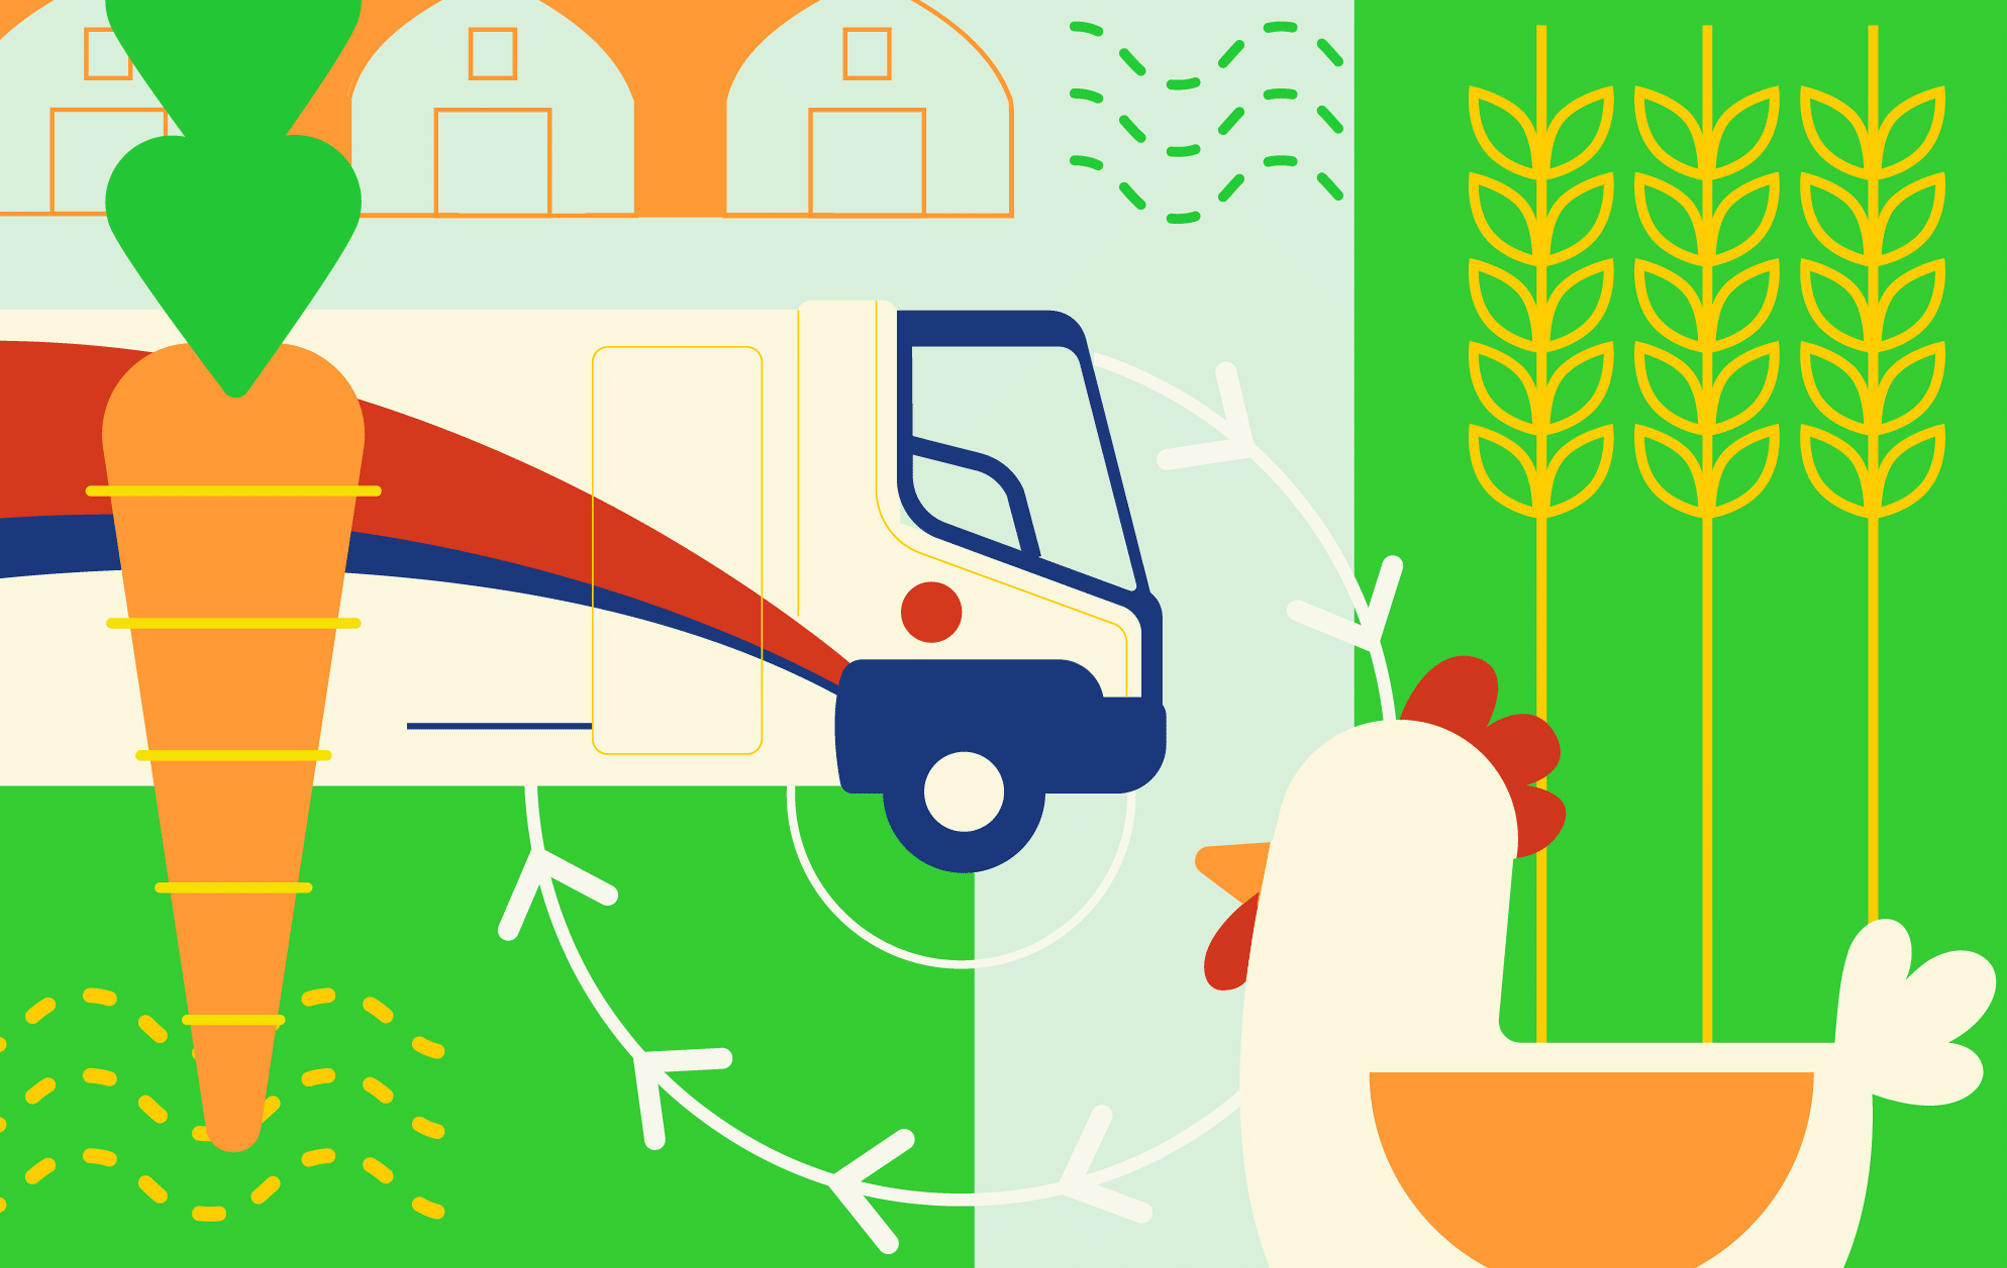 Composite illustration of Local Food Systems